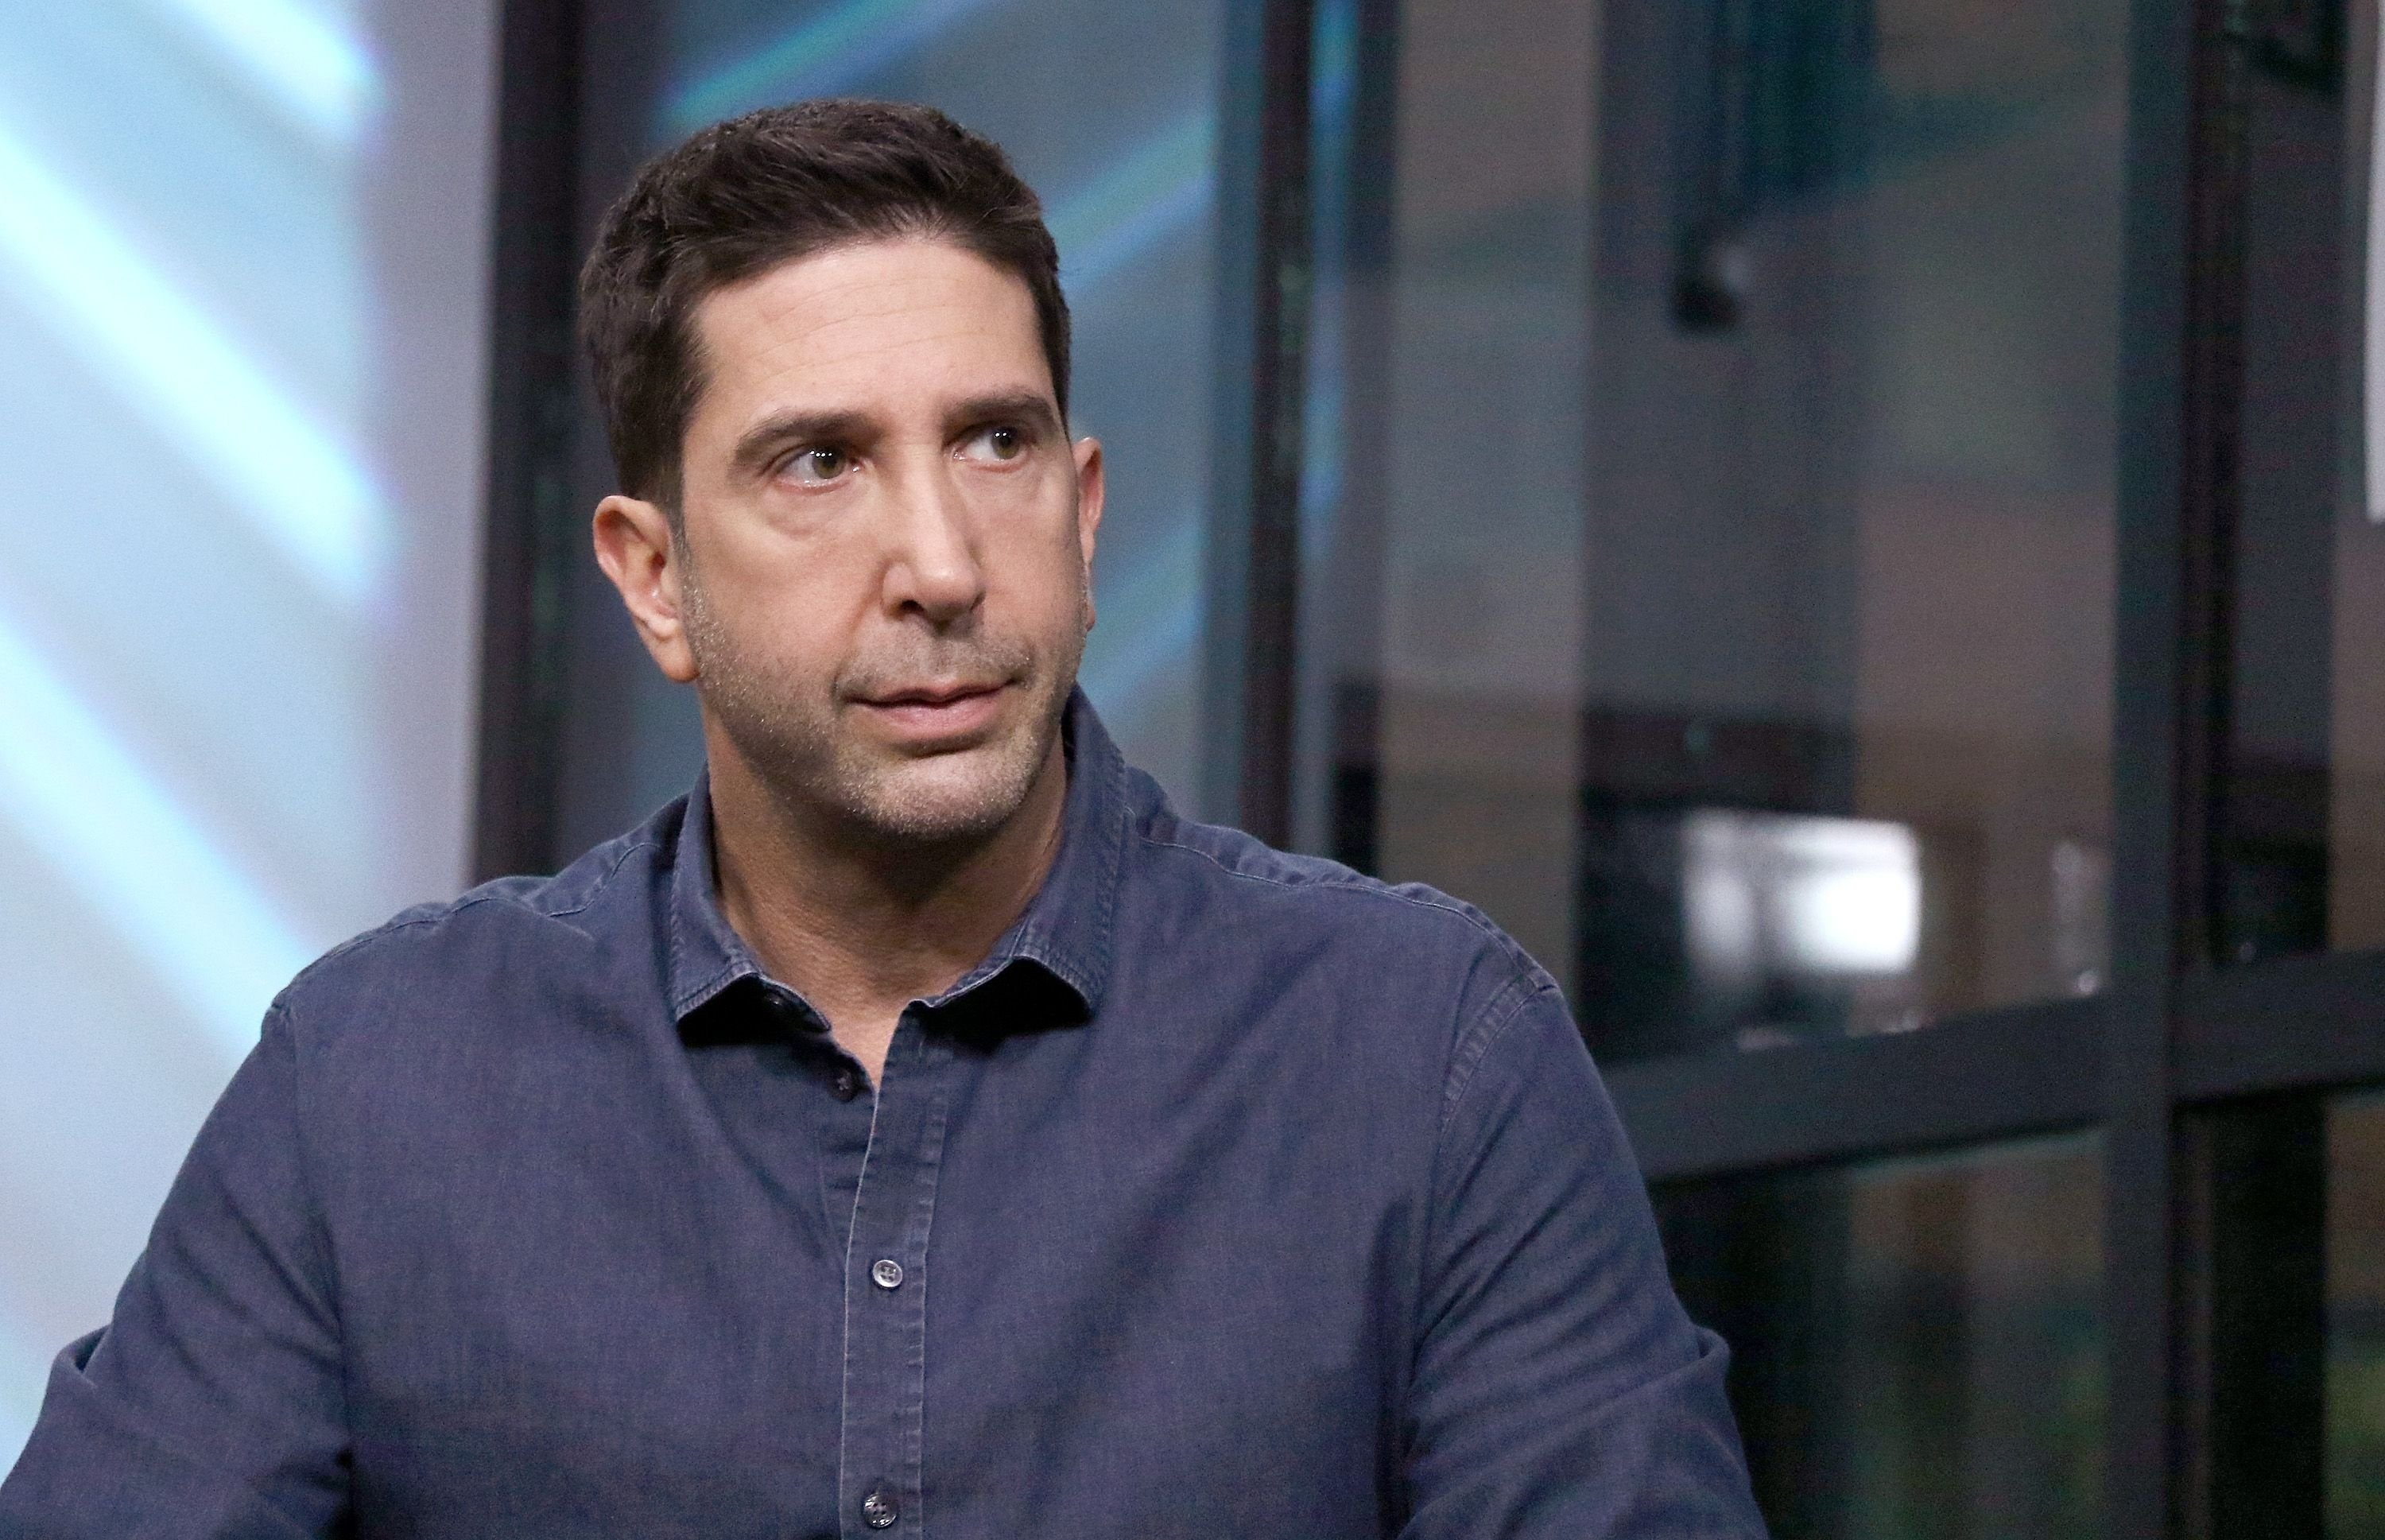 David Schwimmer at the Build Series discussion of #ThatsHarassment campaign in 2018 in New York City | Source: Getty Images